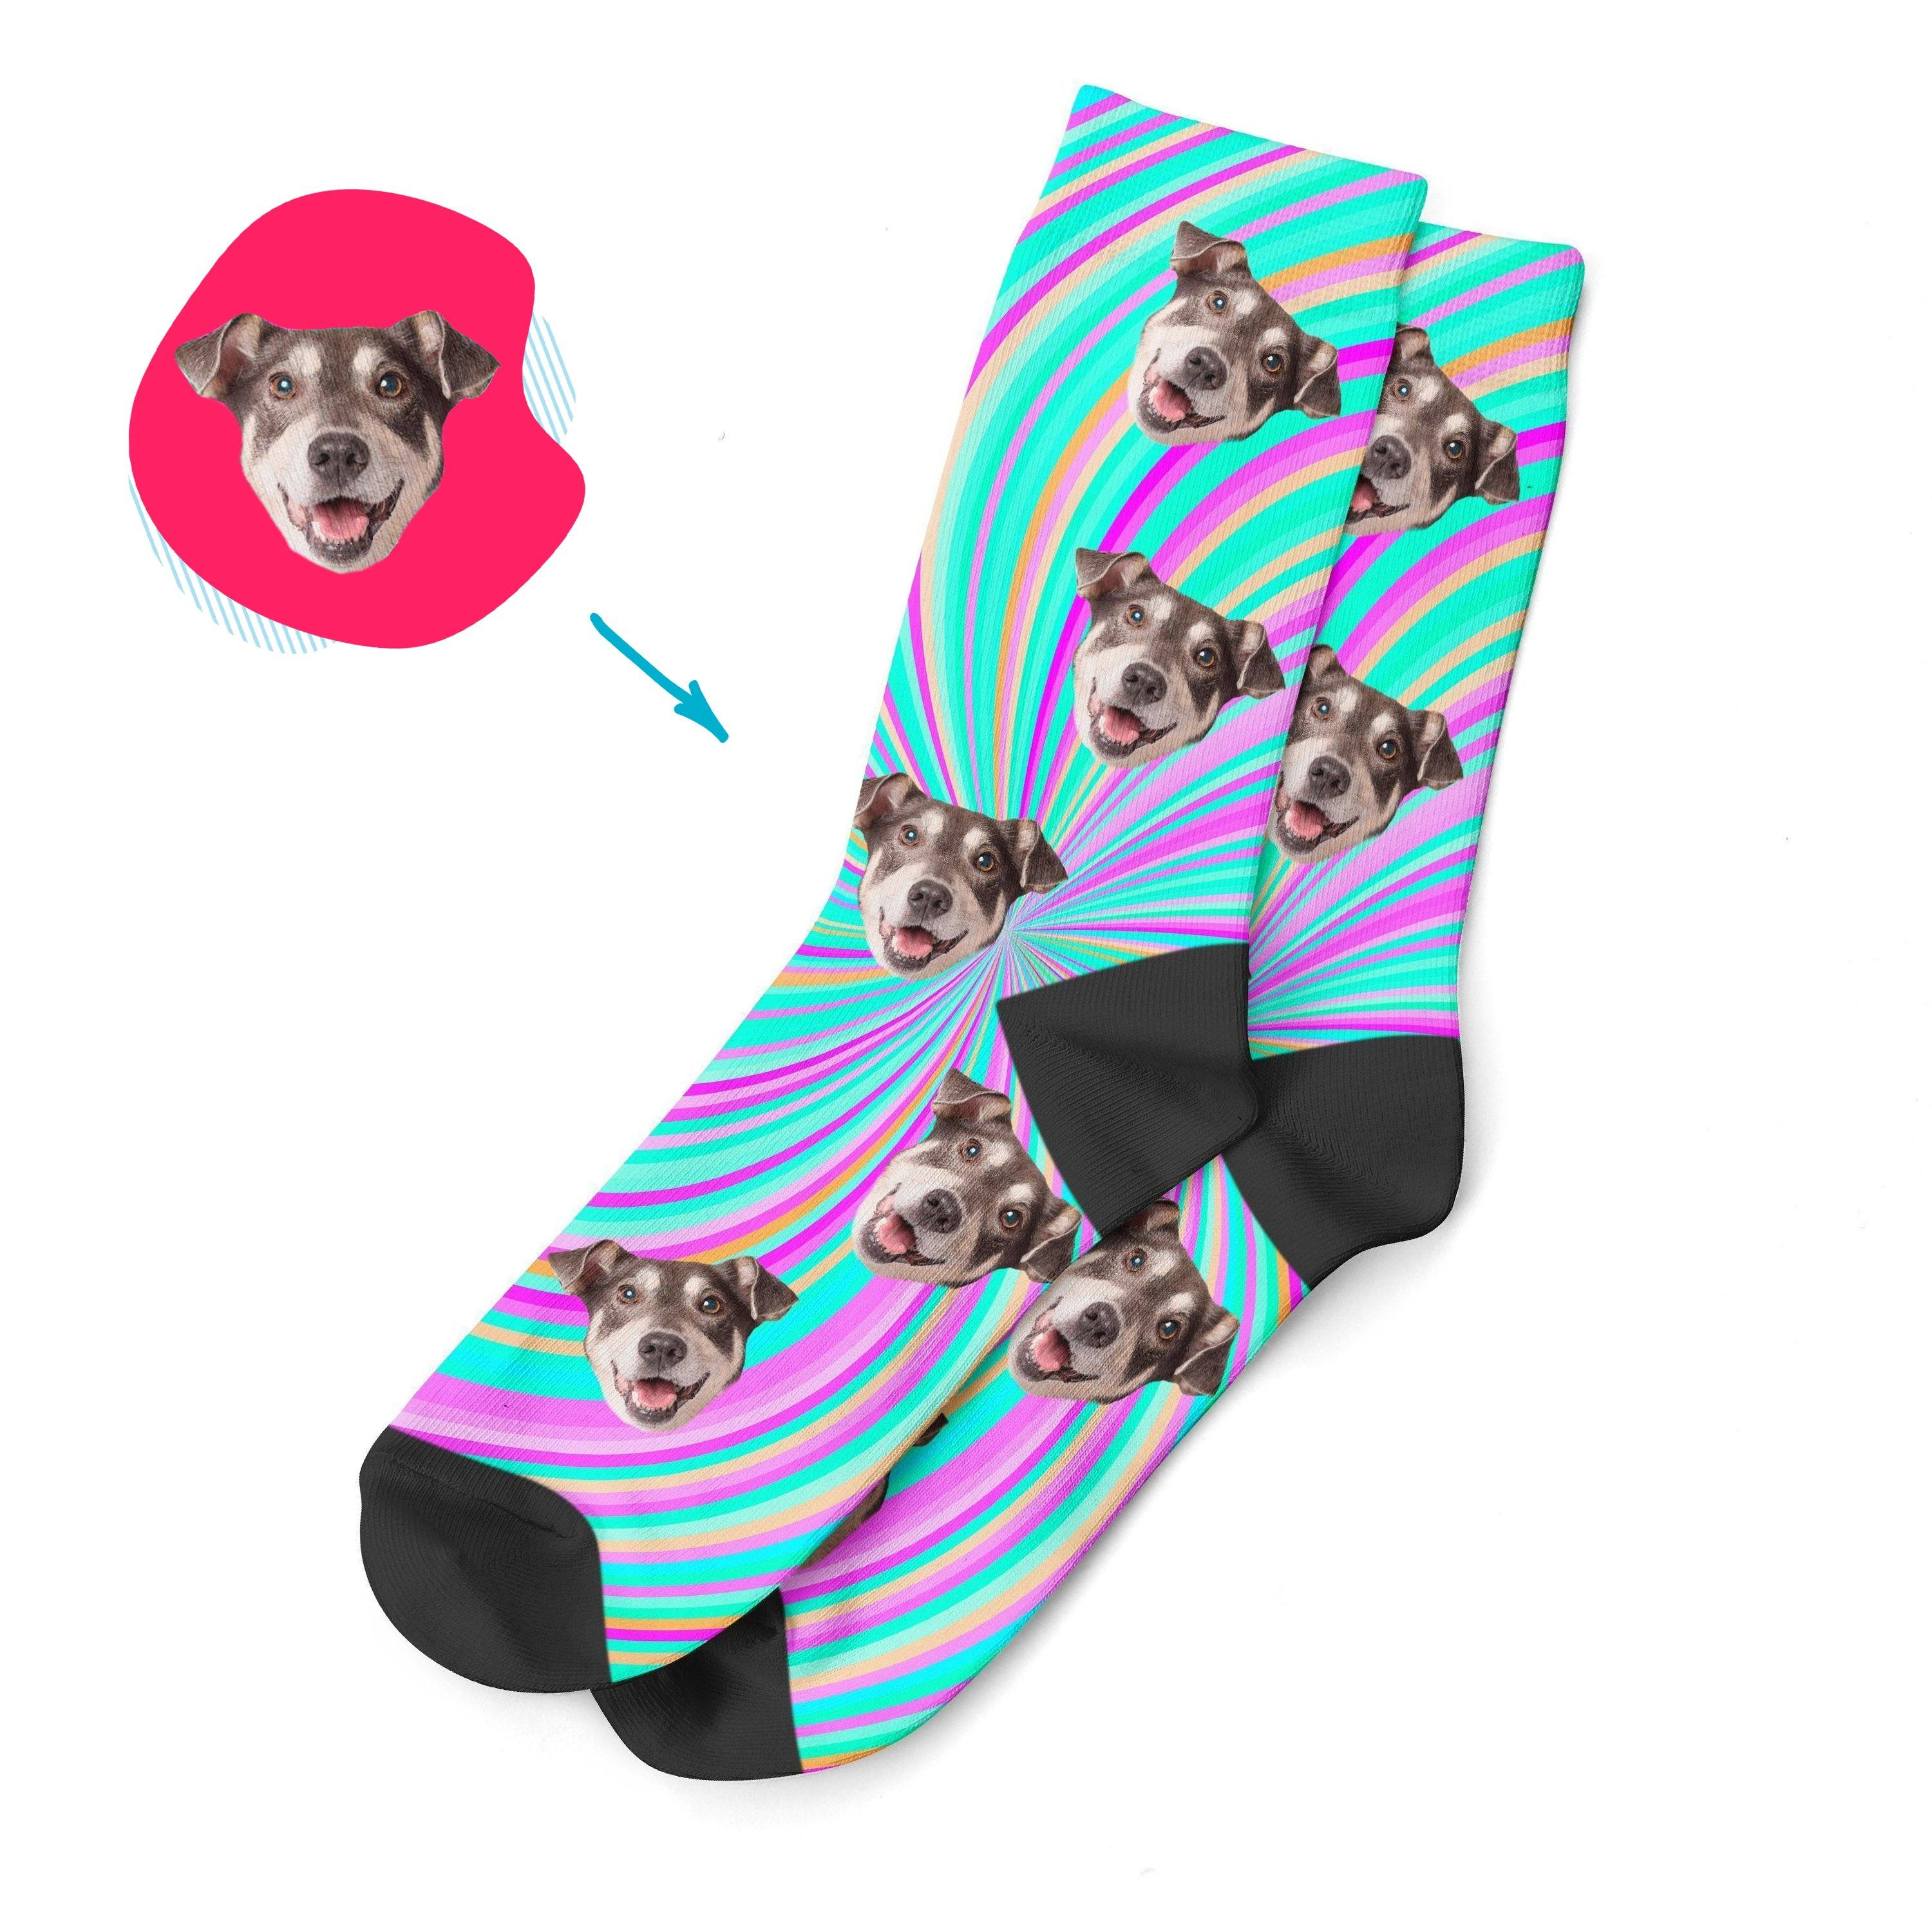 fantasy Fantasy socks personalized with photo of face printed on them